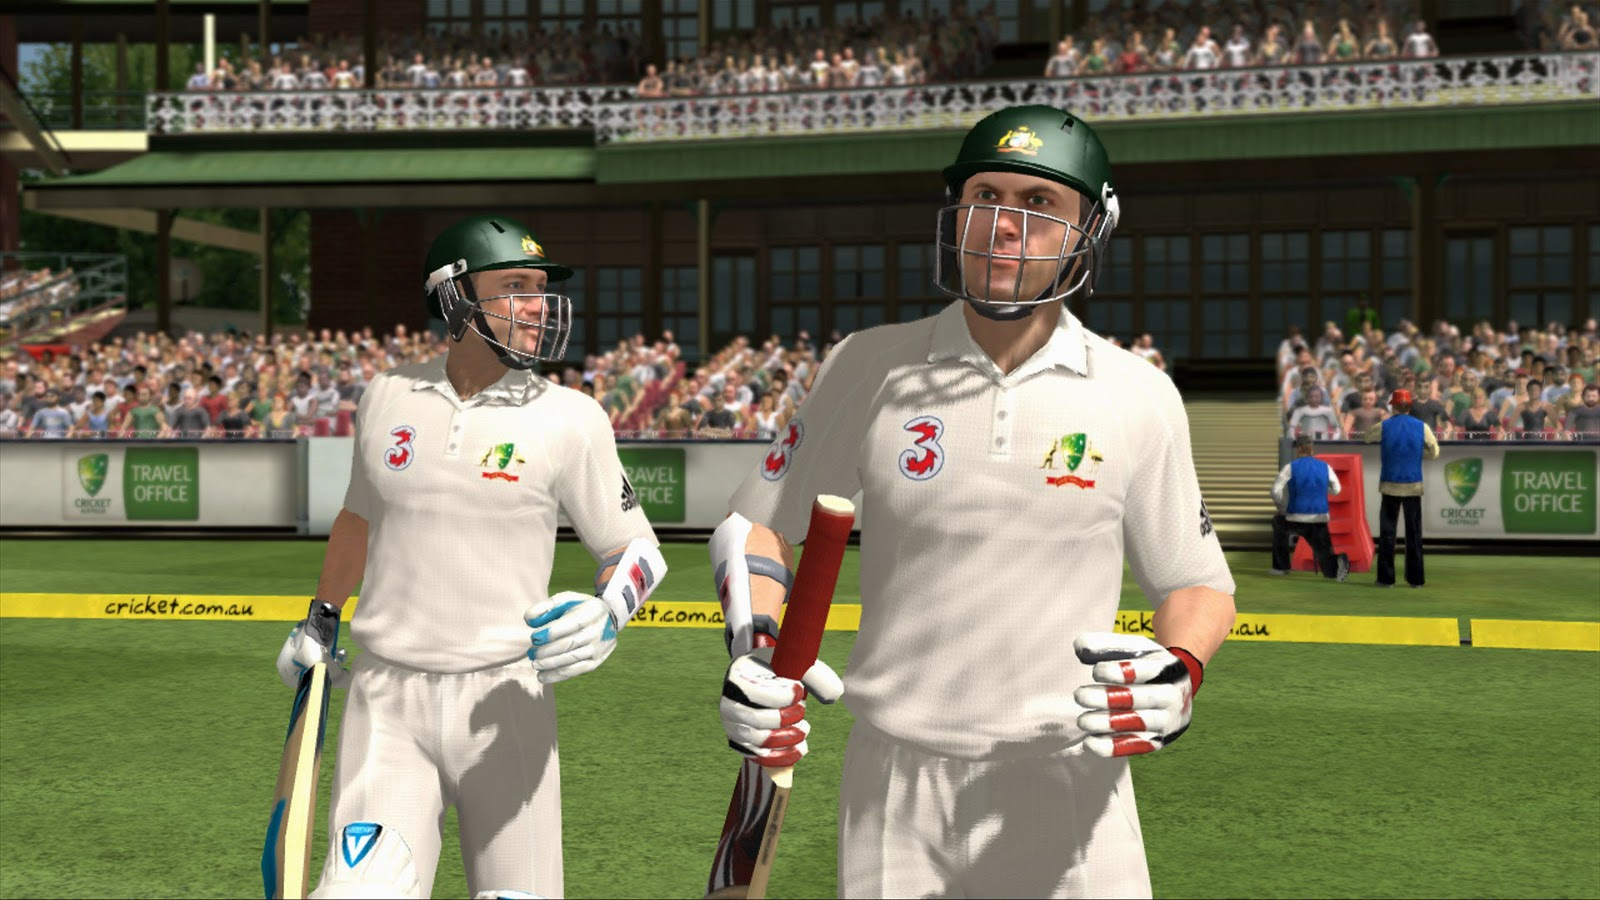 Ashes Cricket 2009 (PC Game)